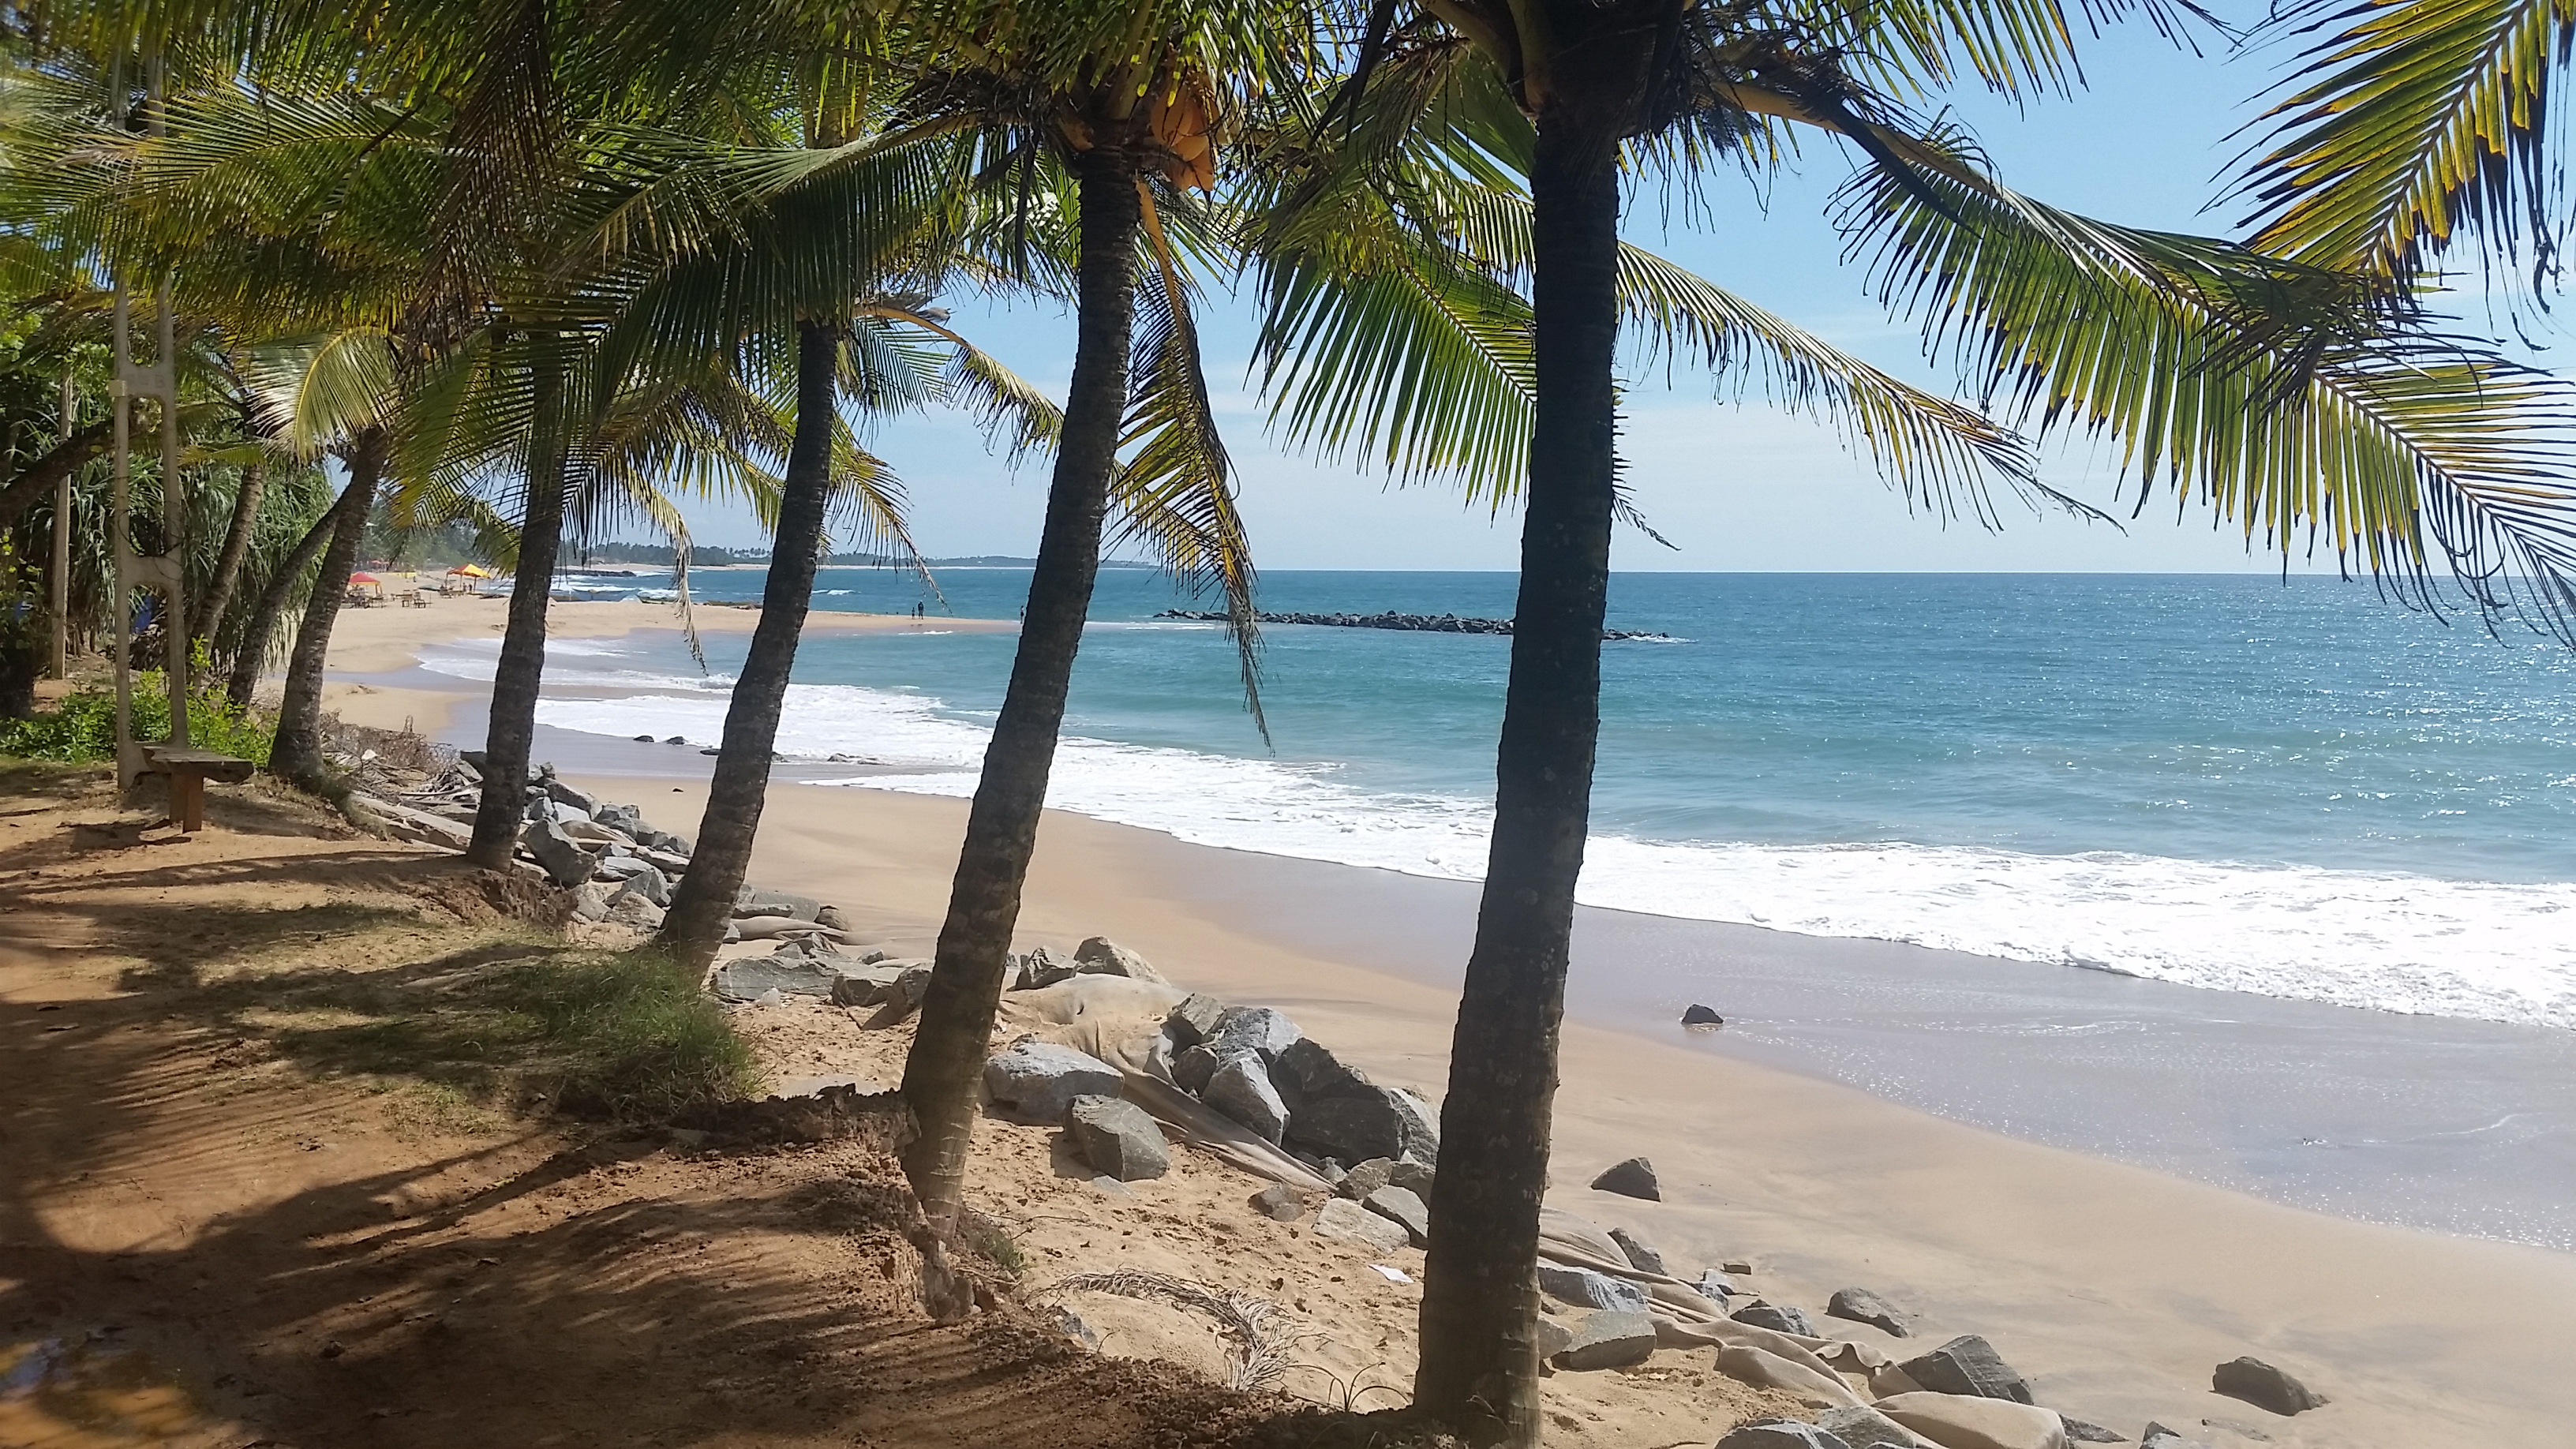 Sri Lanka in 3 weeks: Travel Recommendations (with Video)